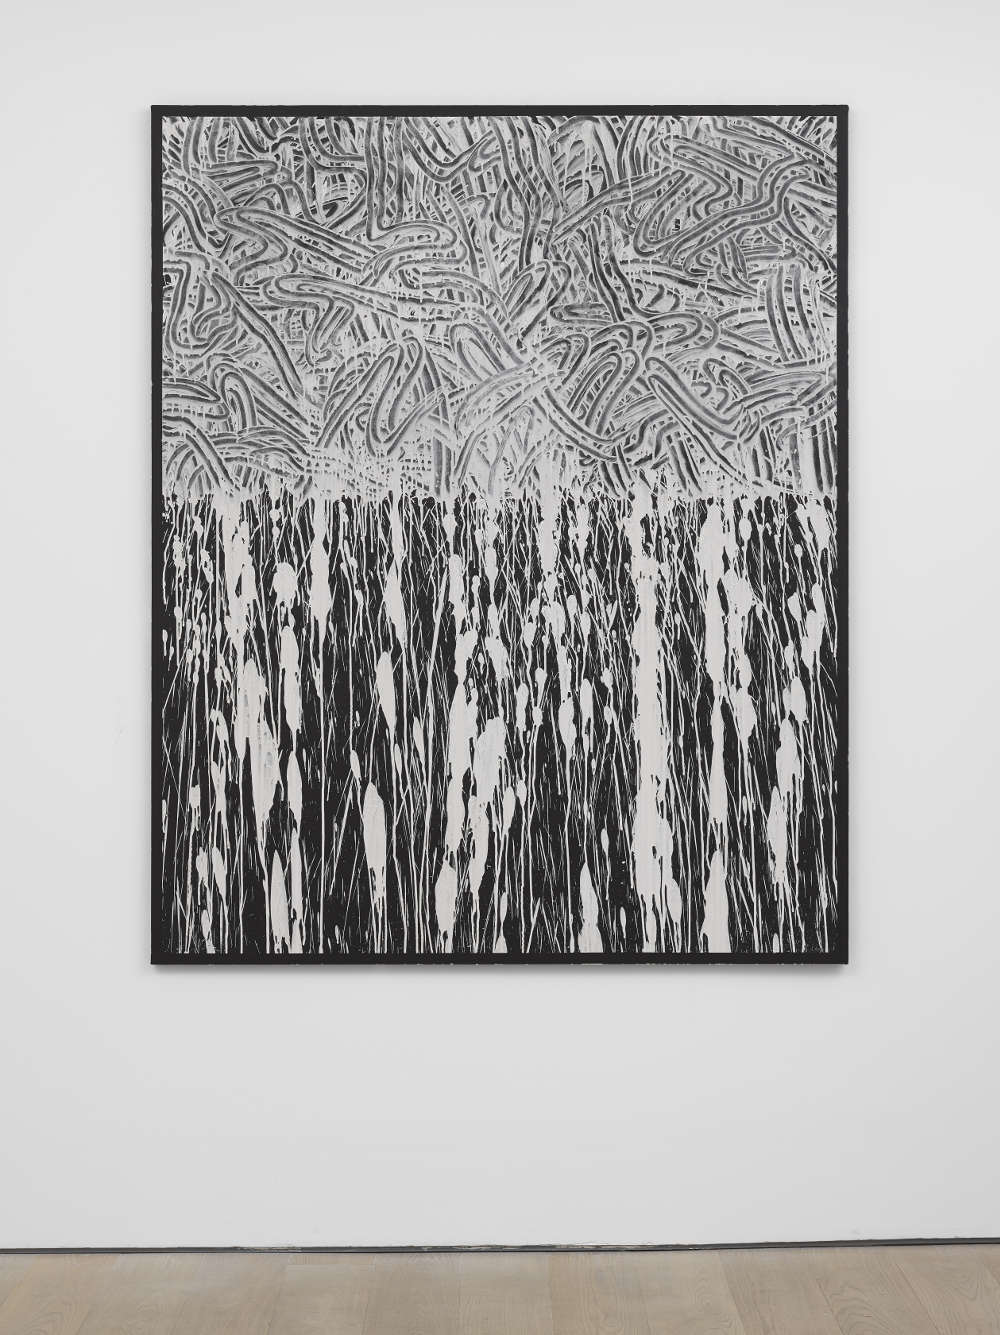 Richard Long, Untitled, 2018. China clay on linen on wood 185 x 150 x 2.7 cm 72 3/4 x 59 x 1 in © Richard Long; Courtesy Lisson Gallery